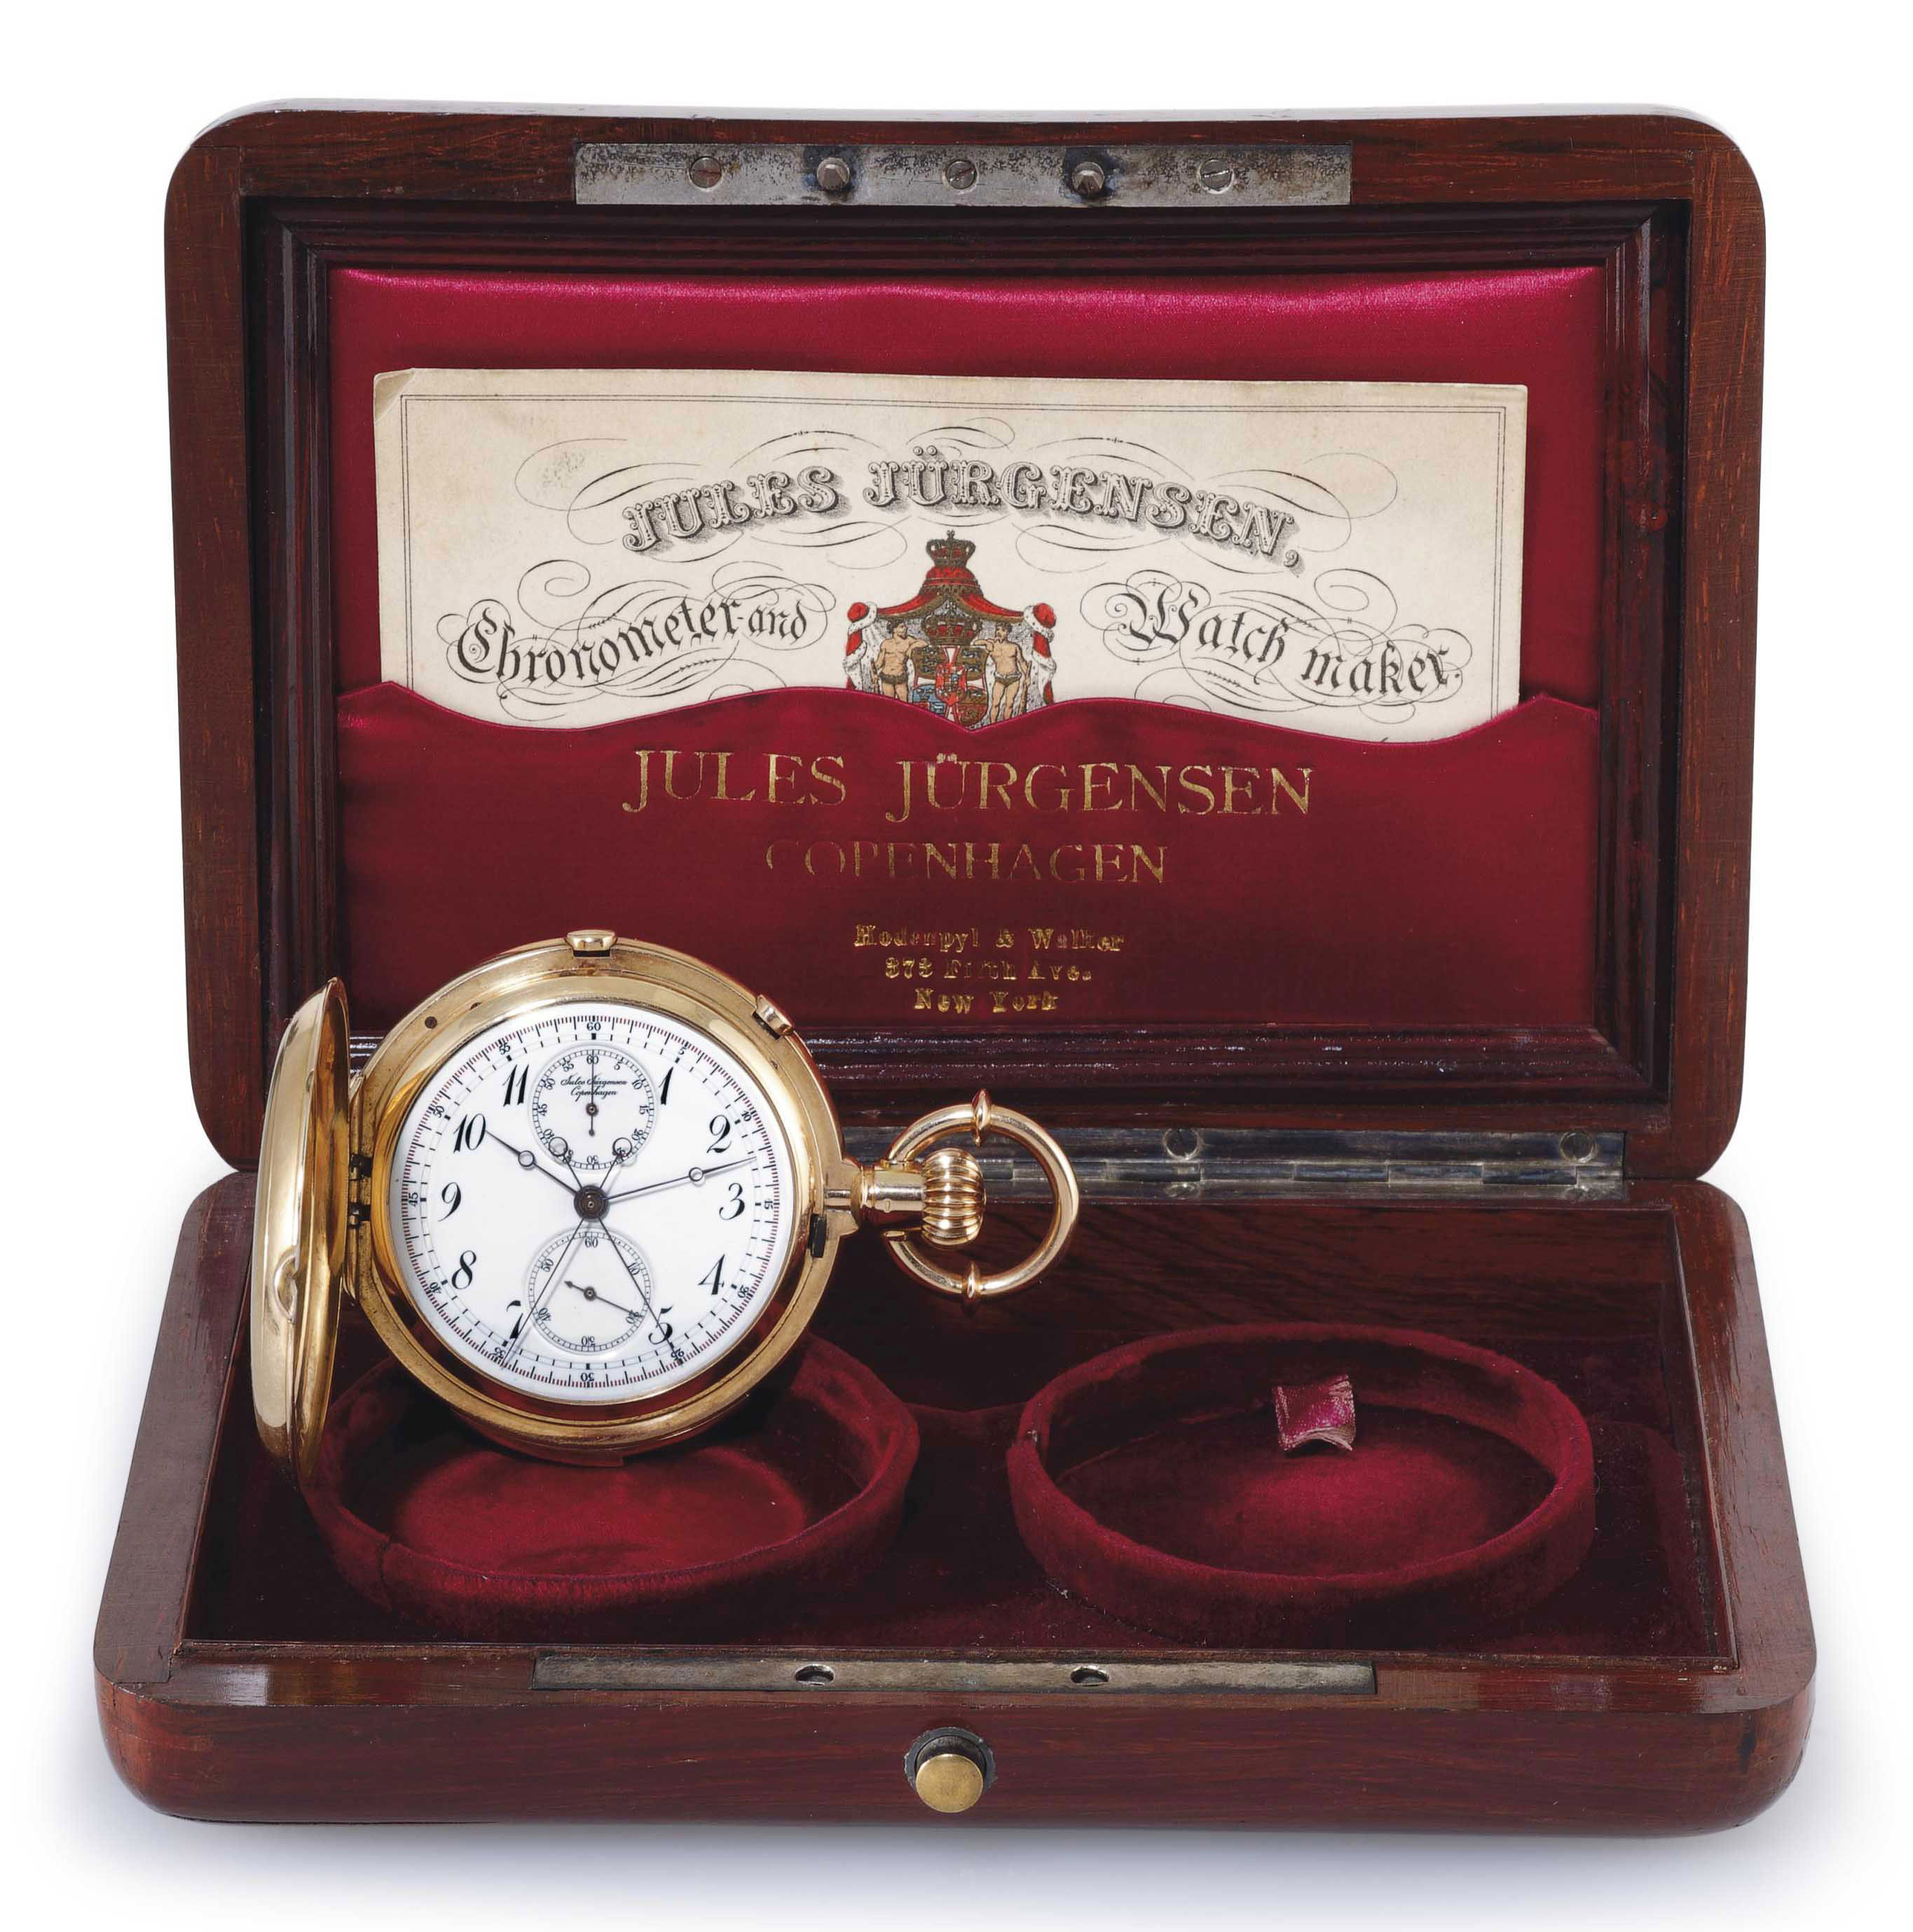 JULES JÜREGNSEN. A RARE 18K PINK GOLD HUNTER CASE MINUTE REPEATING SPLIT-SECONDS CHRONOGRAPH KEYLESS LEVER POCKET WATCH WITH ORIGINAL BOX AND CERTIFICATE